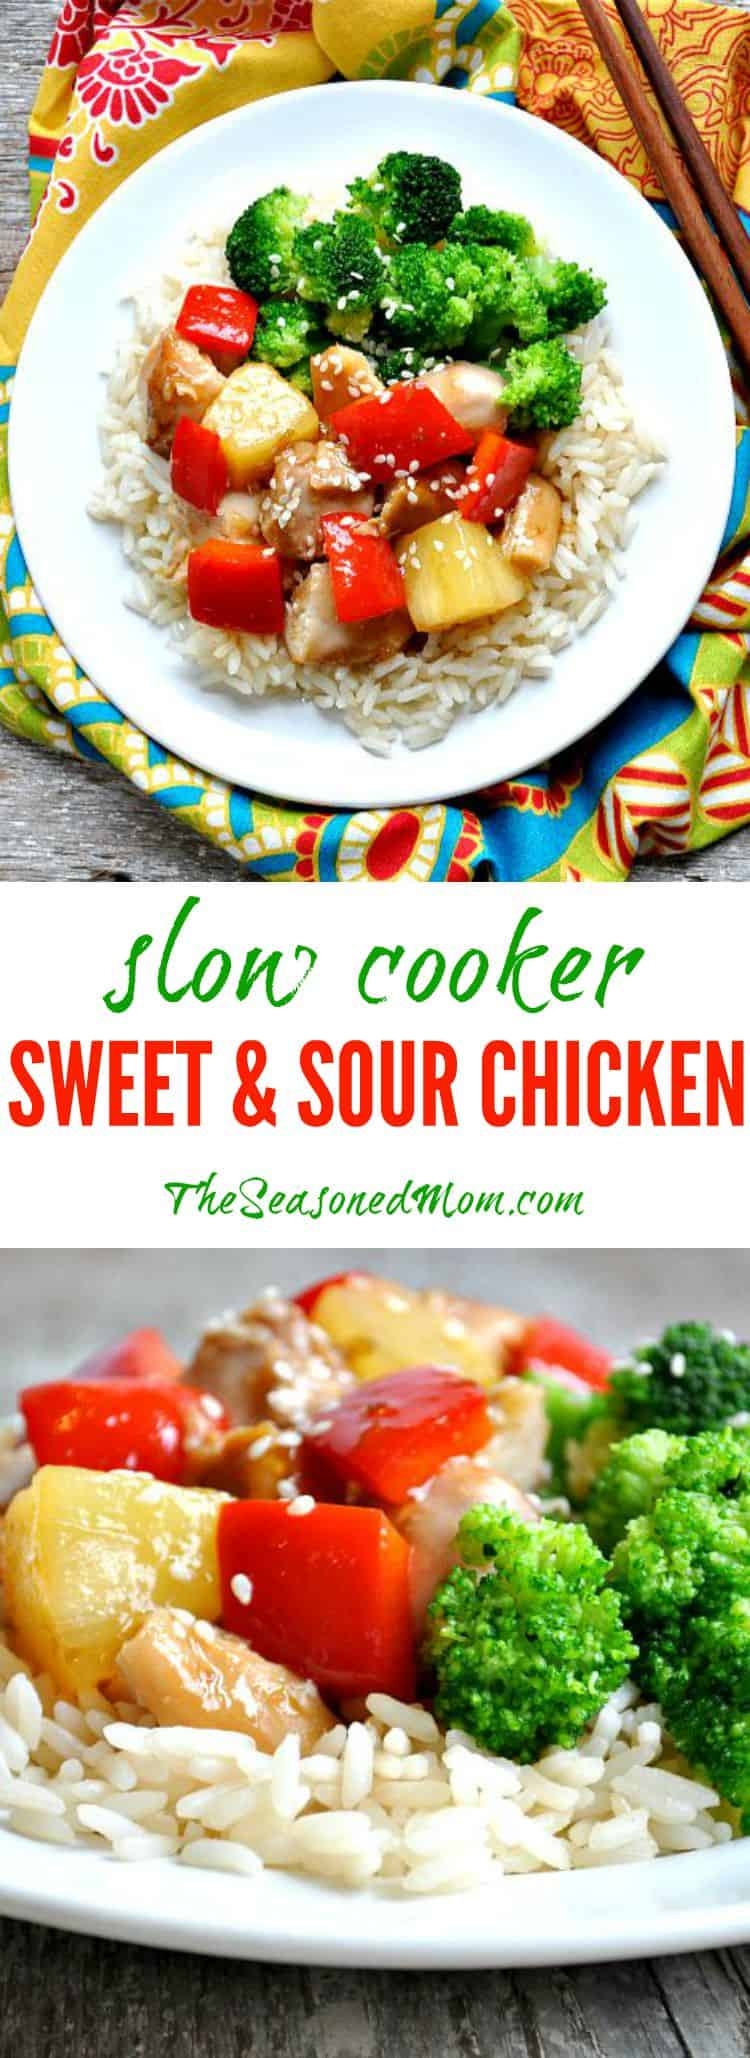 Easy Slow Cooker Sweet and Sour Chicken - The Seasoned Mom